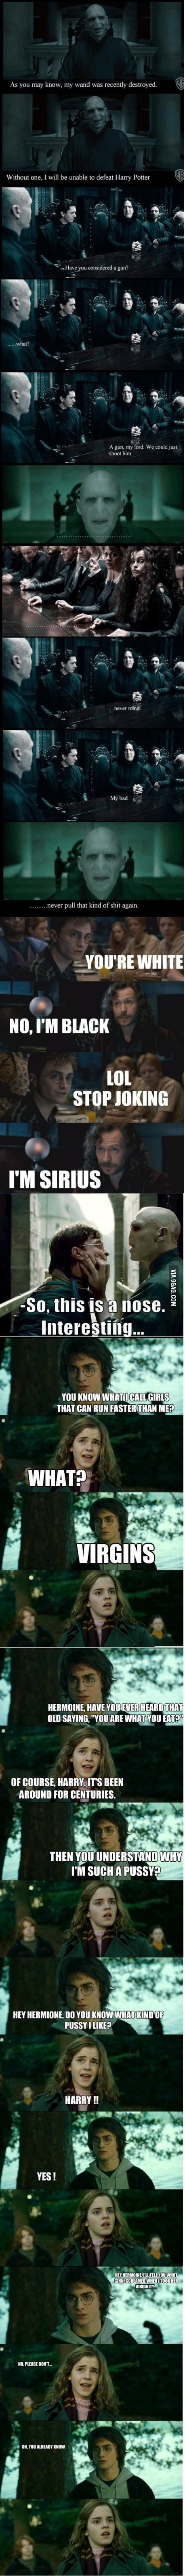 Some Harry Potter Jokes...